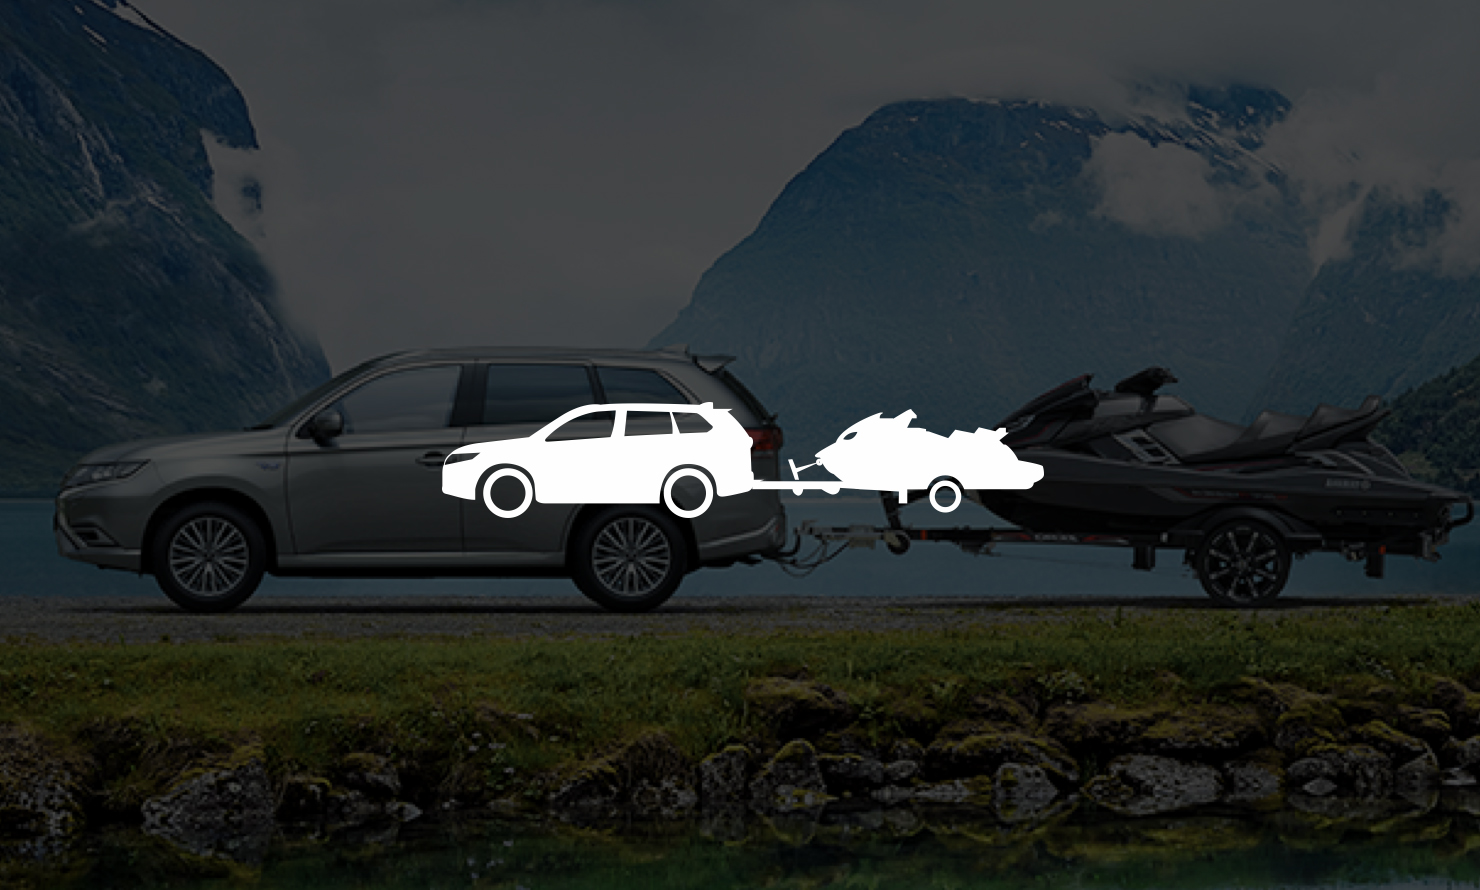 https://www.kubelibre.com/uploads/Slider-work-tutti-clienti/mitsubishi-outlander-phev-be-part-of-the-energy-nazaré-alessandro-marcianò-logo-outlander-phev.jpg